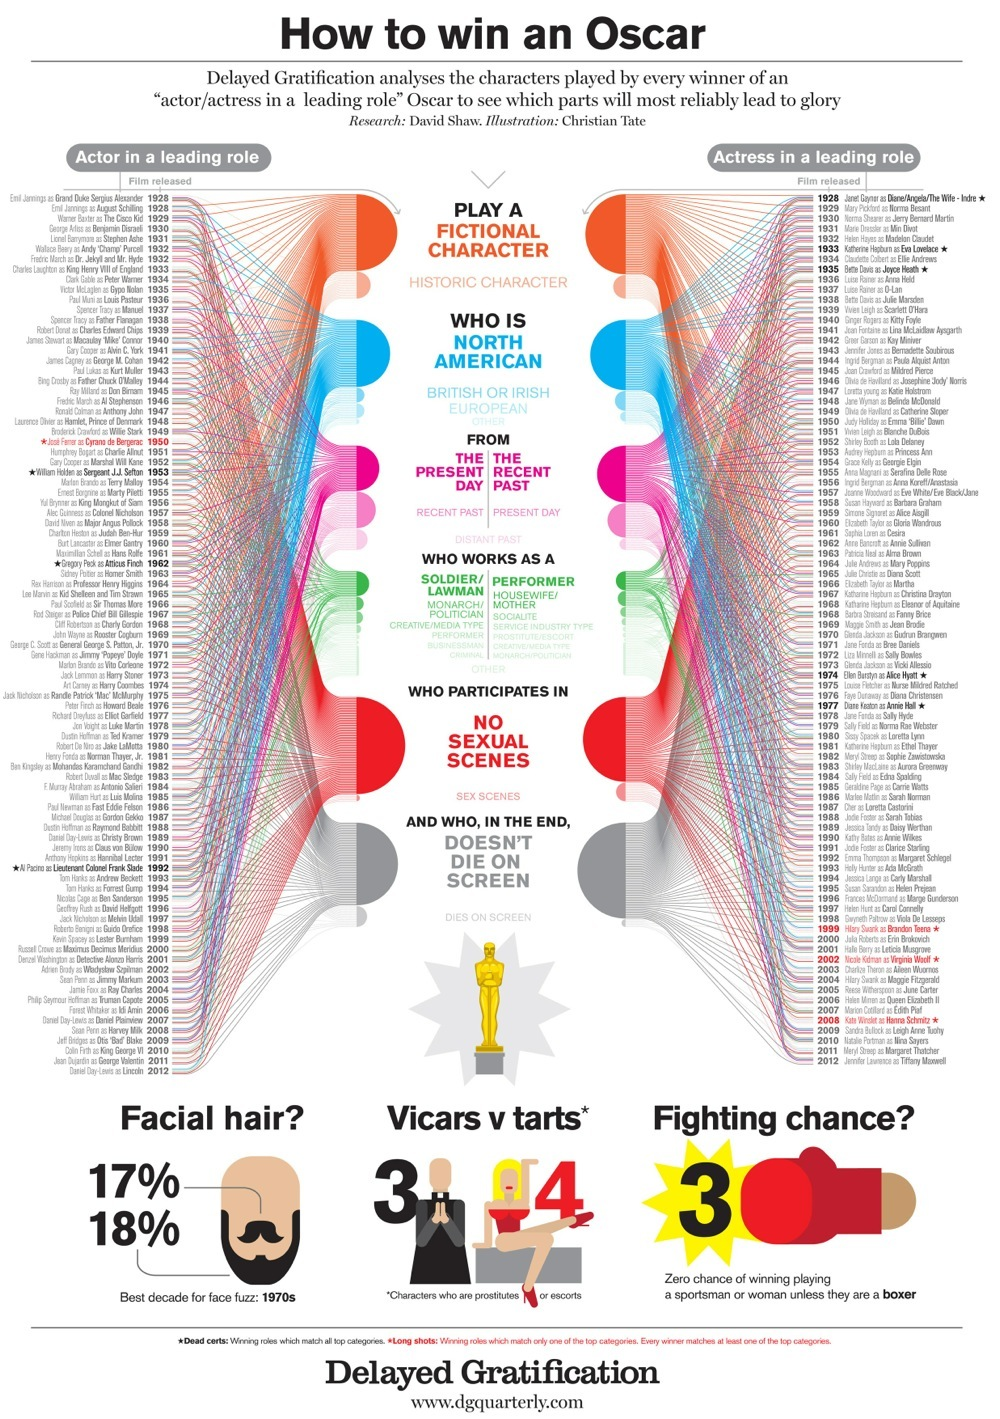 How To Win An Oscar - Infographic